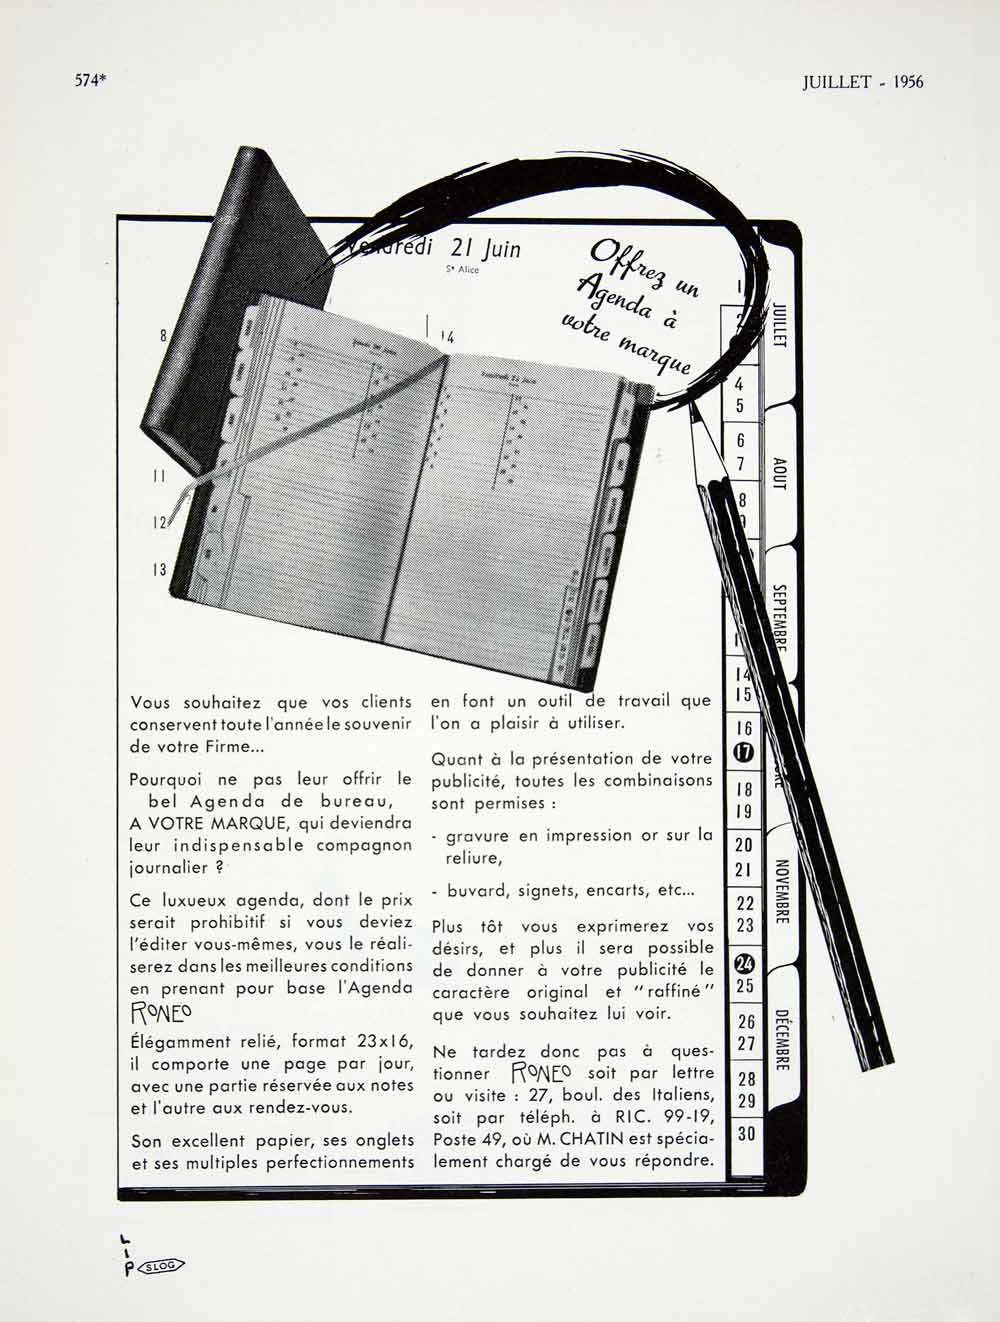 1956 Ad Roneo Shedule Agenda Chantin French Pencil Jotter Office Supply VEN6